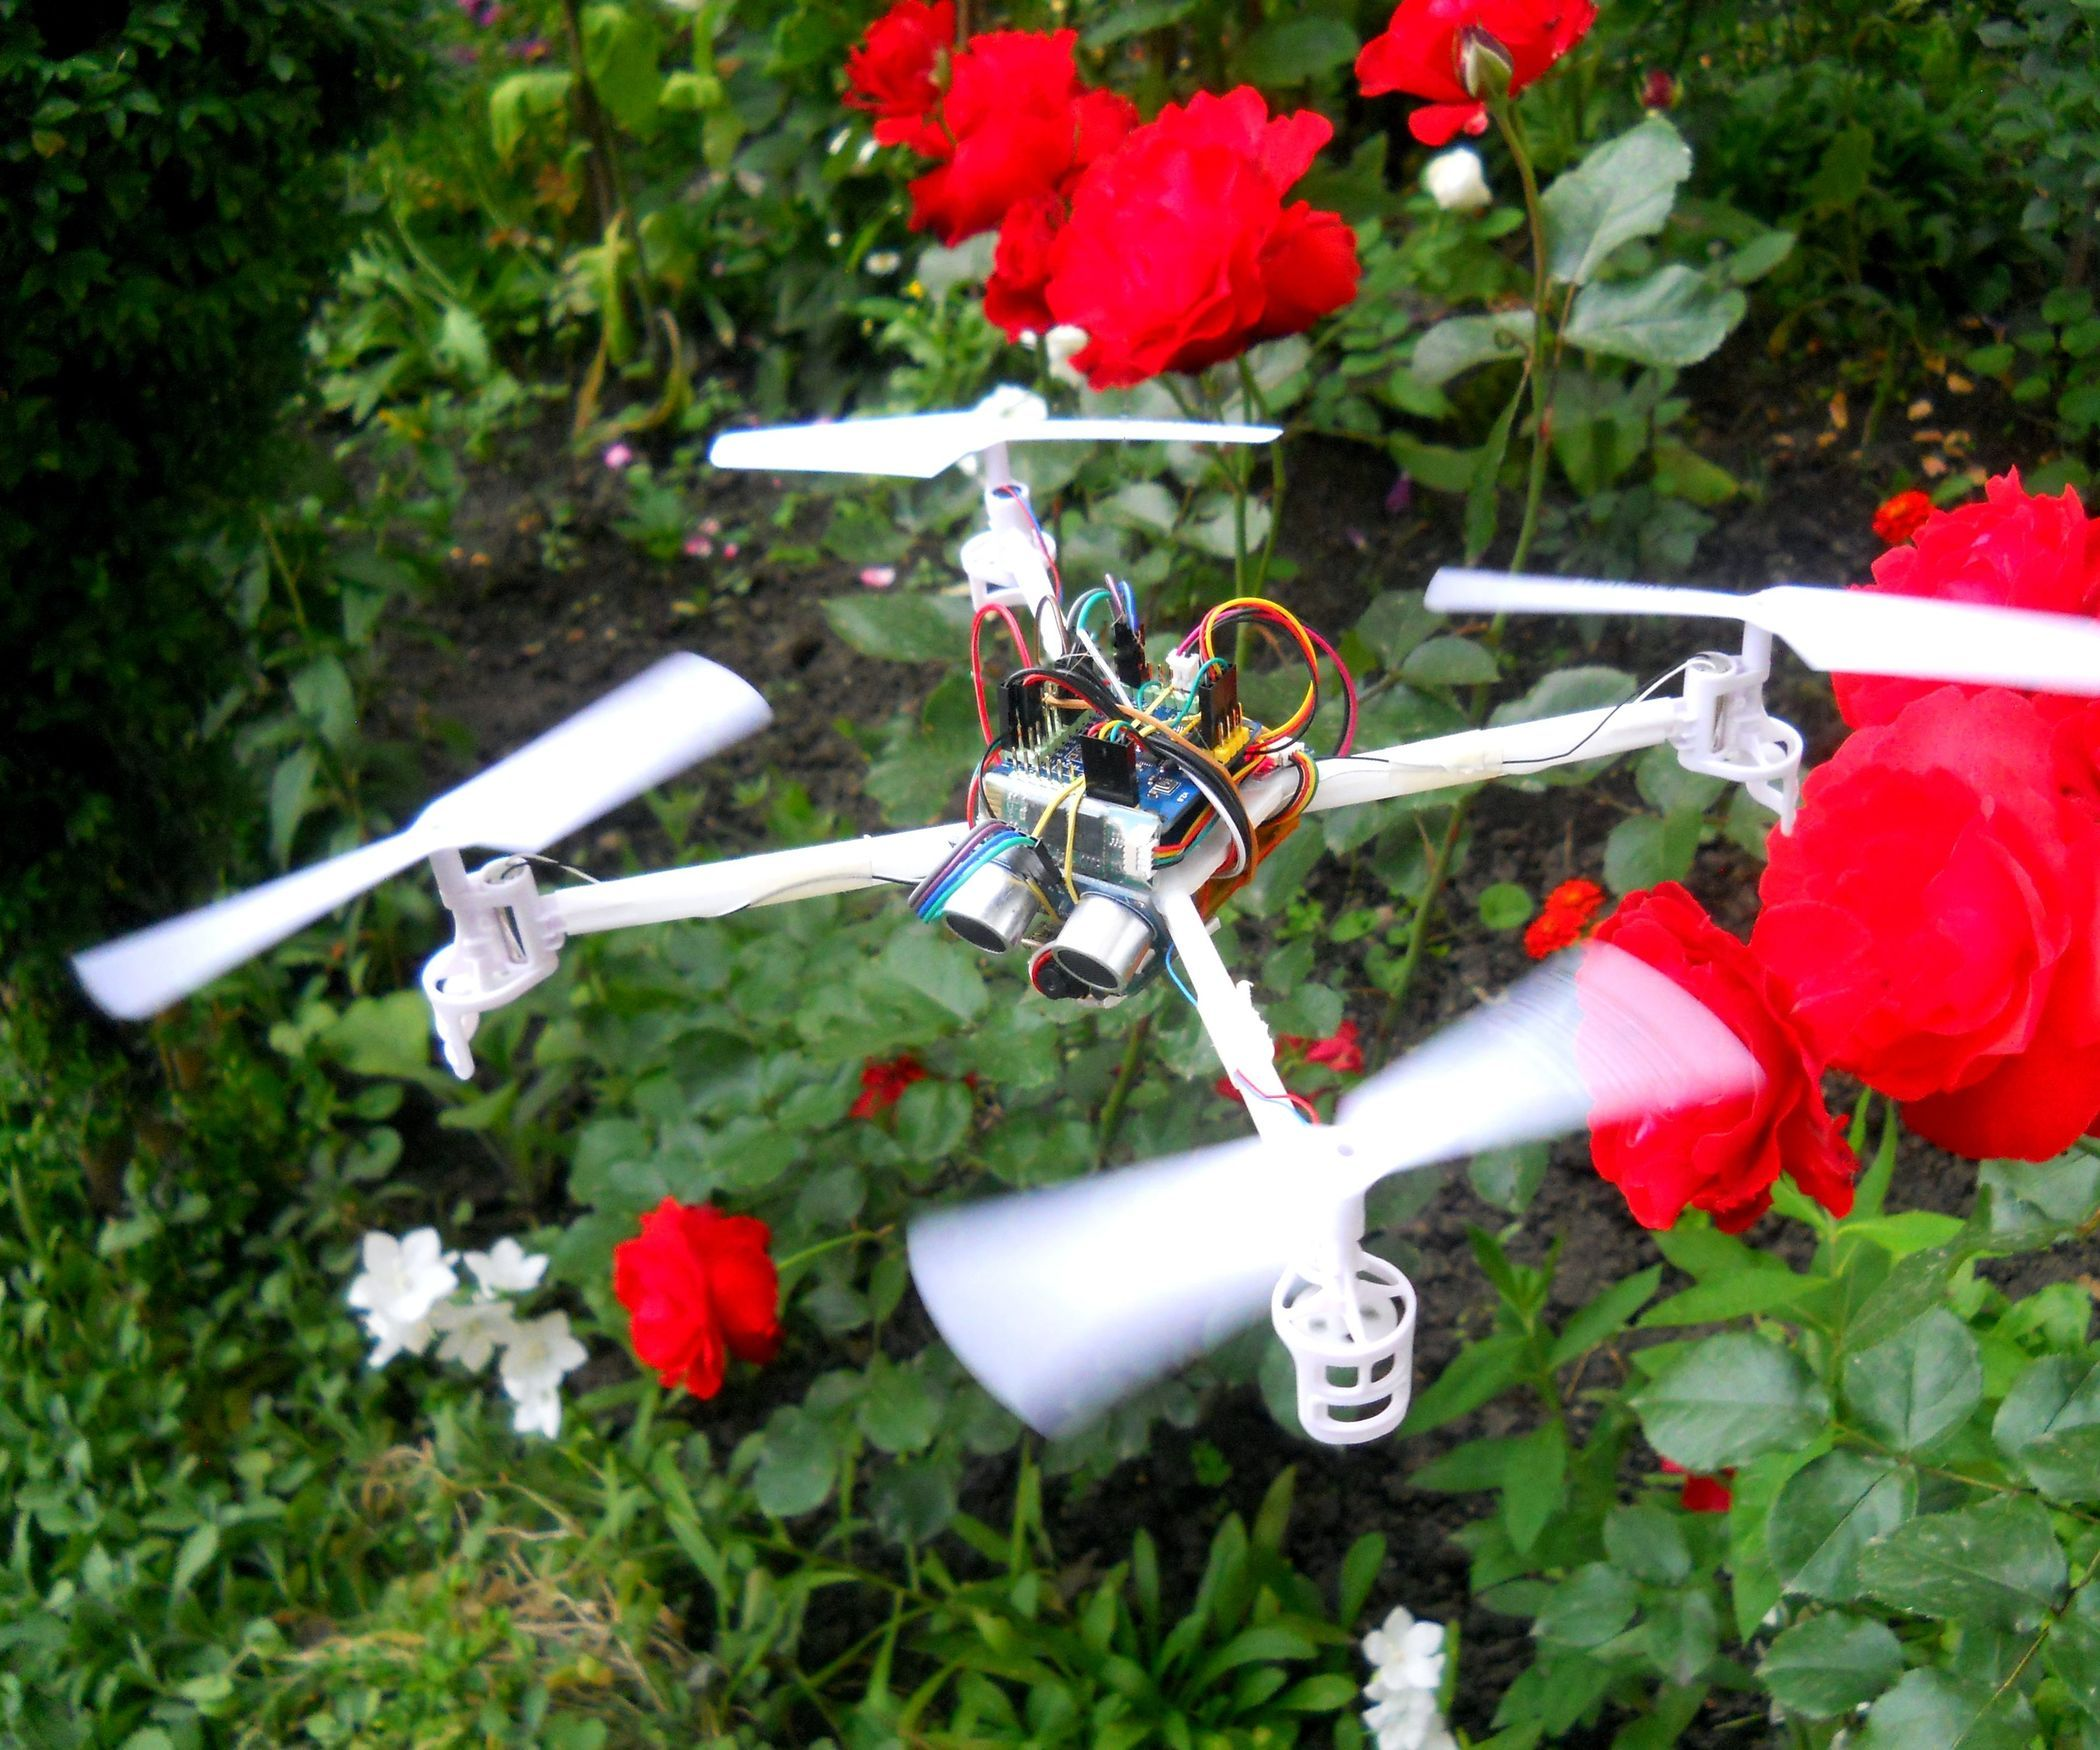 Drones are very popular toys and tools these days. You can find professional and even beginner drones and flying gadgets in the market. I have four drones (quadcopters and hexcopters), because I love everything that flies, but the 200th flight isn't so interesting and starts to be boring, so I decided that I will build my own drone with some extra feutures. I like to program Arduino and design circuits and gadgets so I started to build it. I used the MultiWii flight controller that is based o...